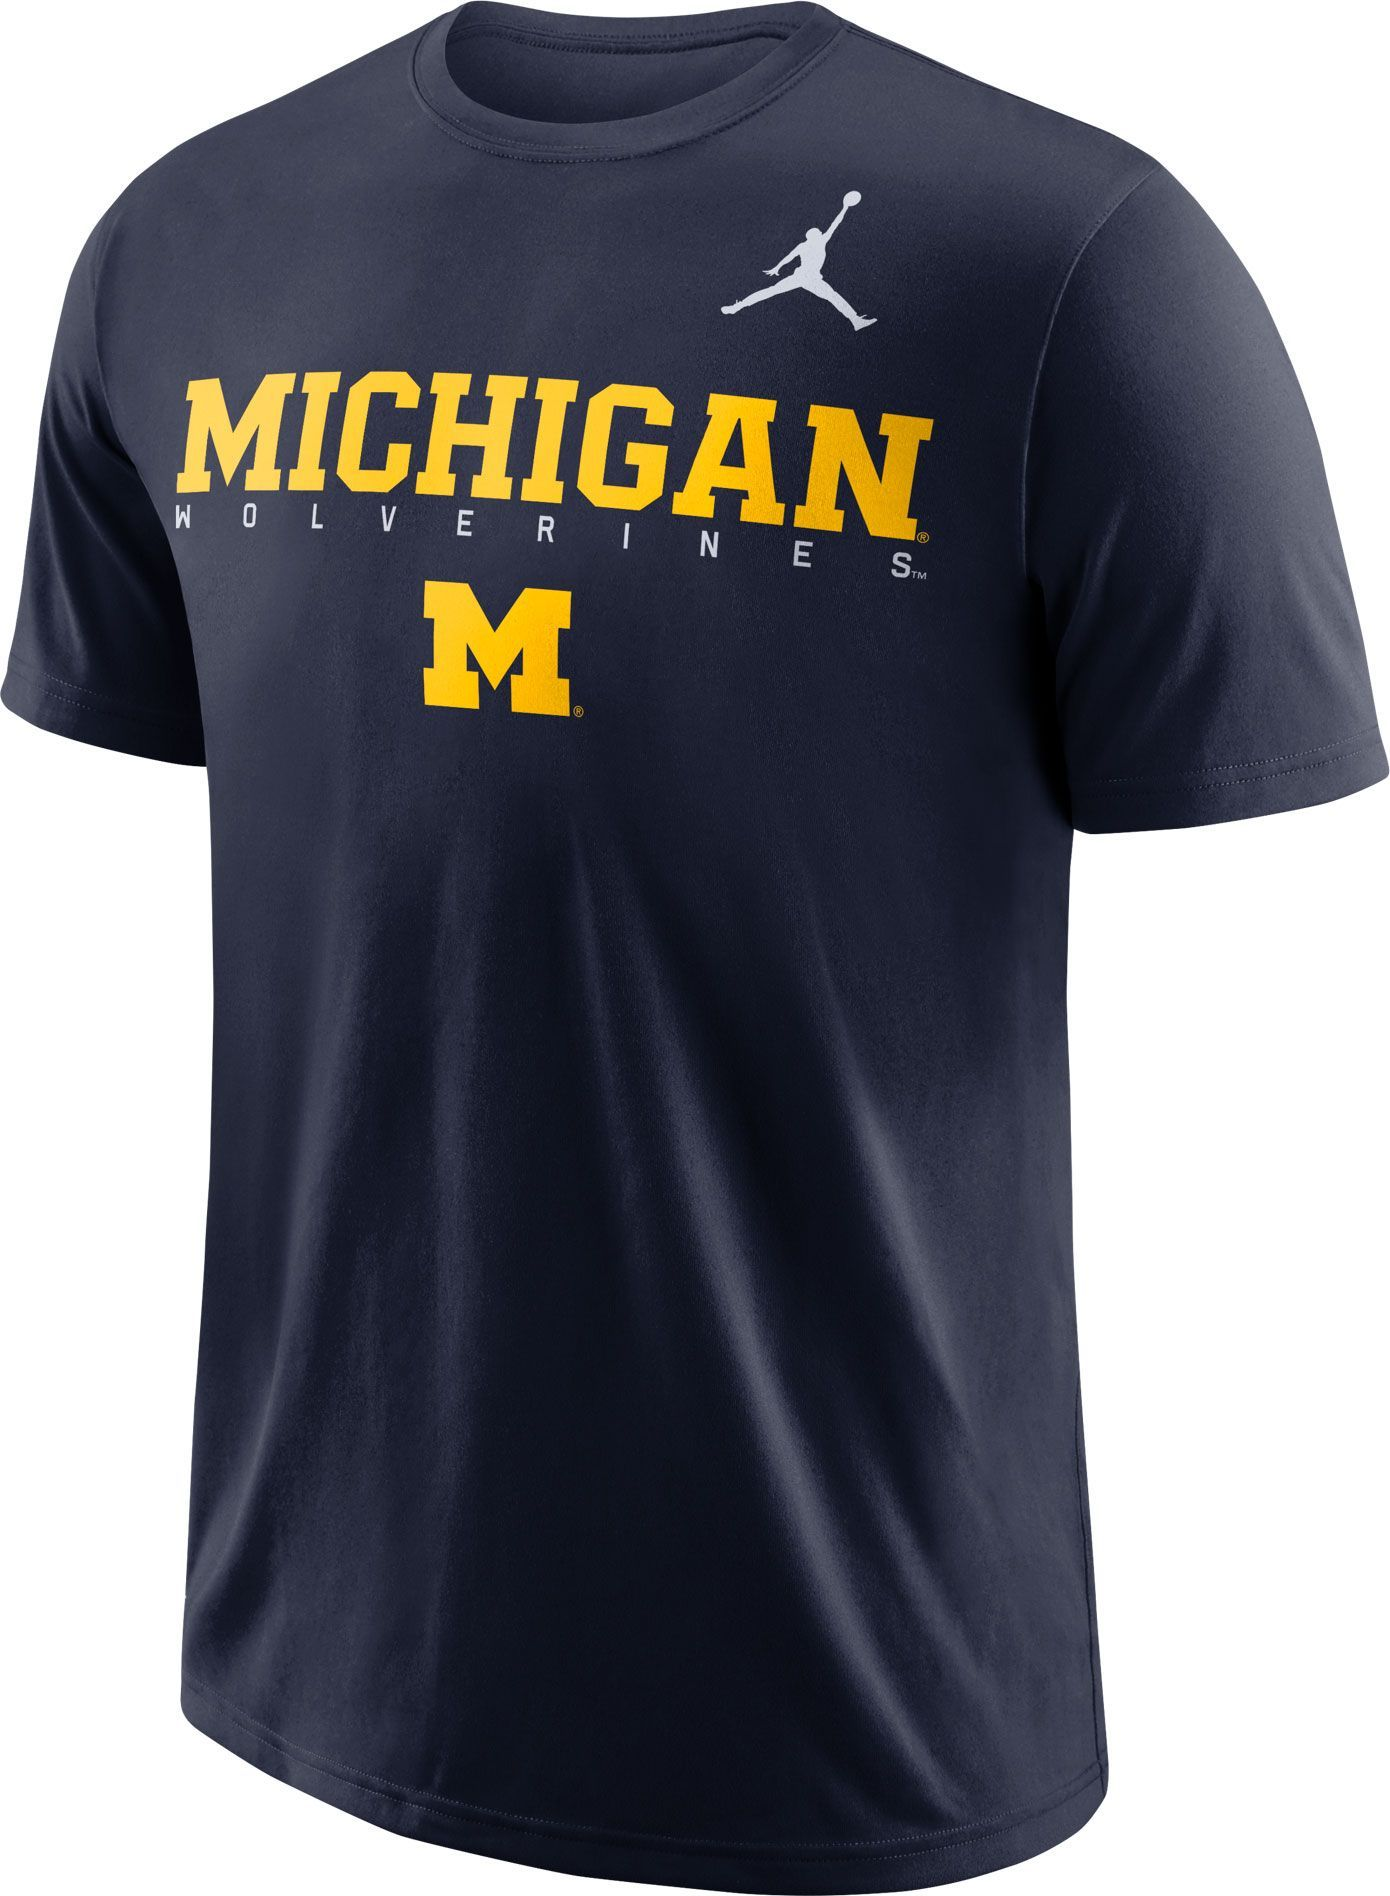 Provided Mens Nike Dri-fit Football T Shirt Size Small Buy One Get One Free Men's Clothing Clothes, Shoes & Accessories